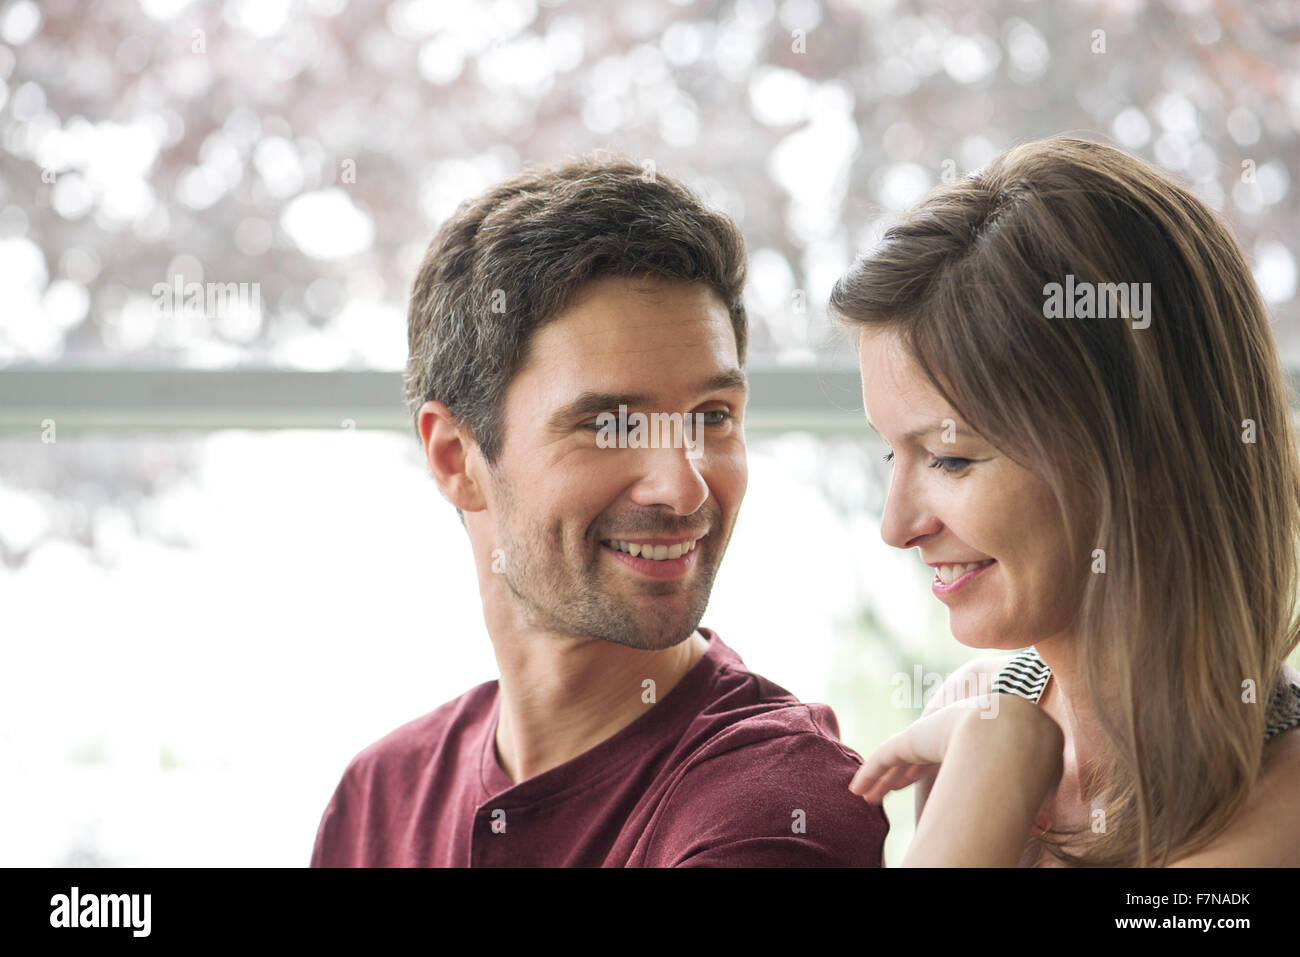 Couple smiling together - Stock Image